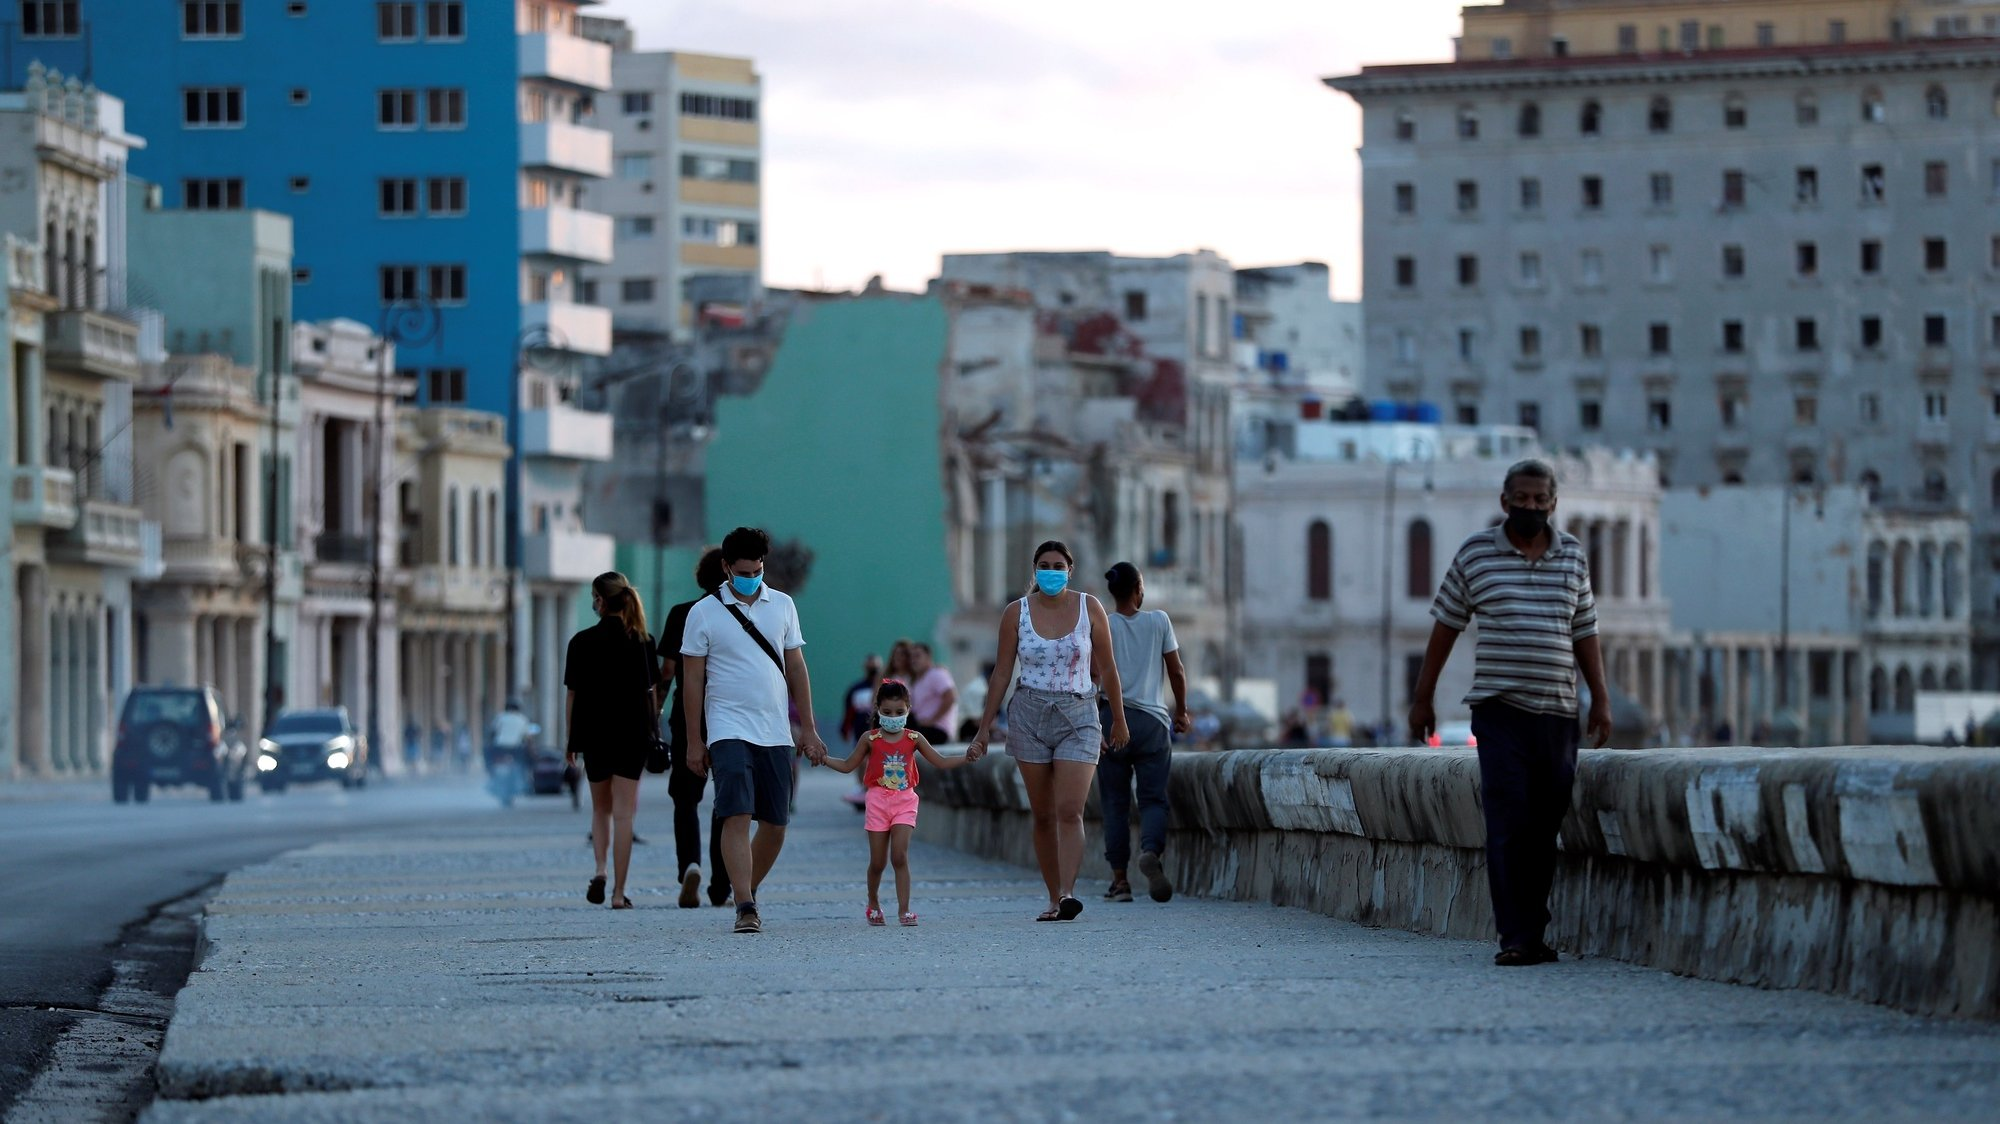 epa09498856 People spend the afternoon on the malecon in Havana, Cuba, 30 September 2021. The authorities of Havana announced the relaxation as of this Wednesday of some restrictive measures established due to COVID-19 in the areas of recreation and sports, due to the fact that Cuban capital has reported a sustained decrease in the contagion of this disease for eight weeks.  EPA/Ernesto Mastrascusa